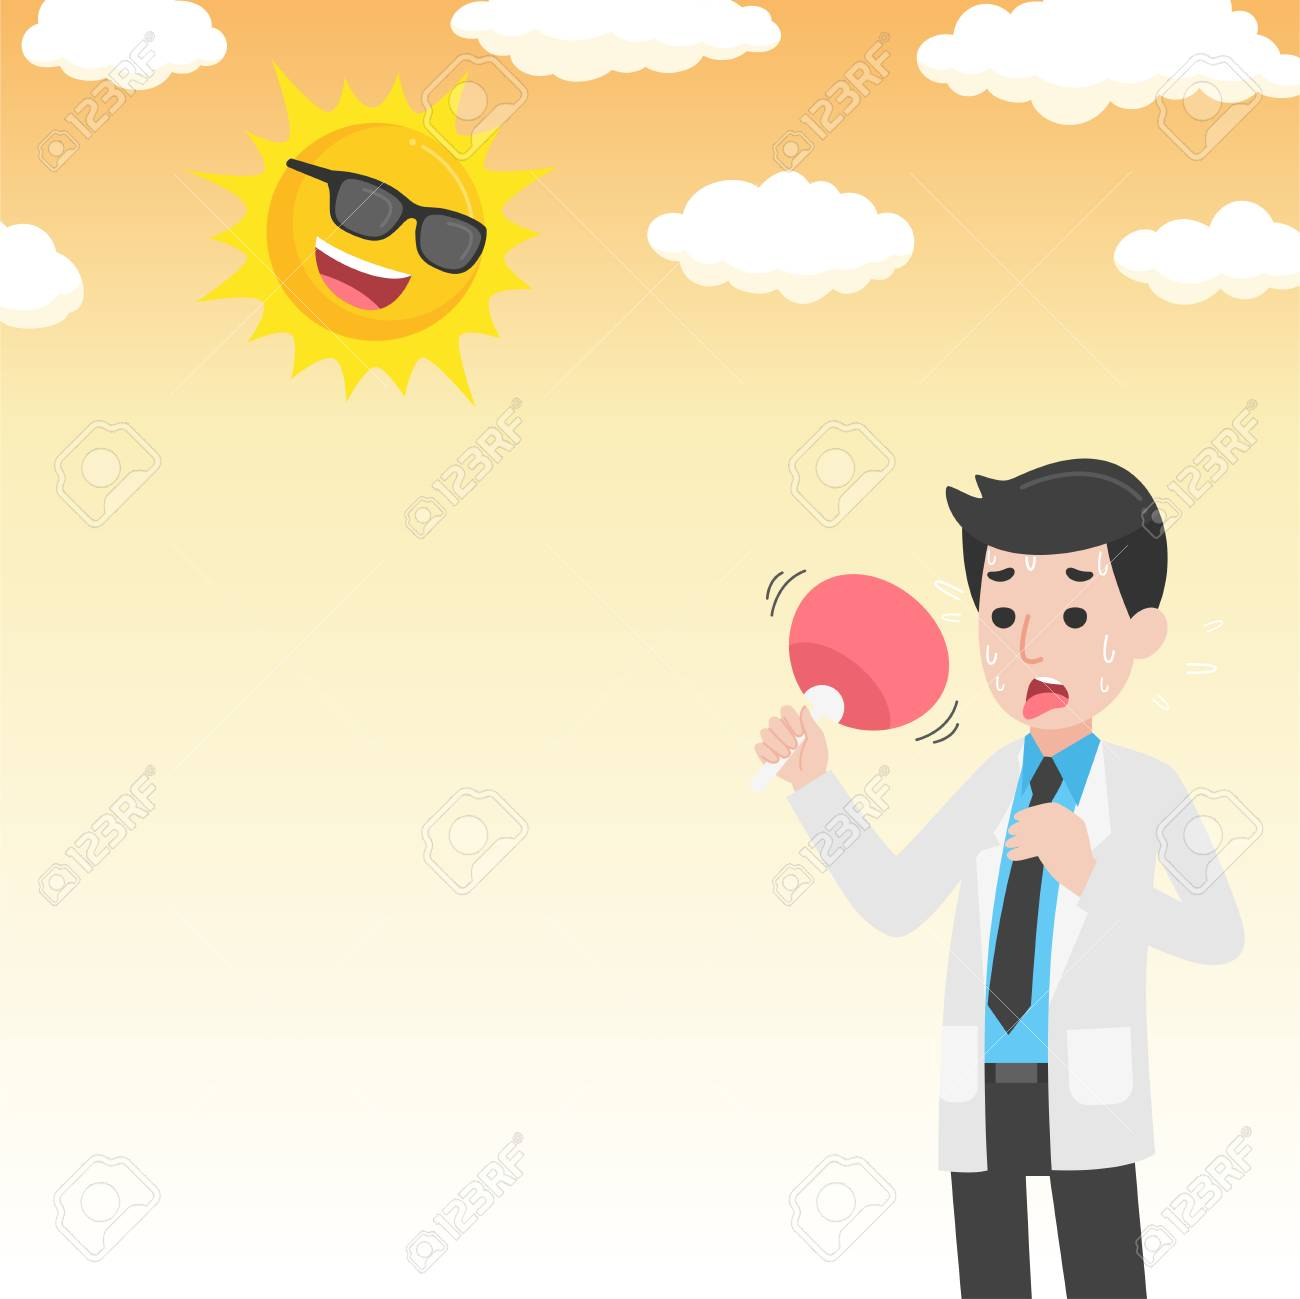 Doctor Holding Fan Have Heatstroke In Summer Concept Hot Weather Royalty Free Cliparts Vectors And Stock Illustration Image 124654677